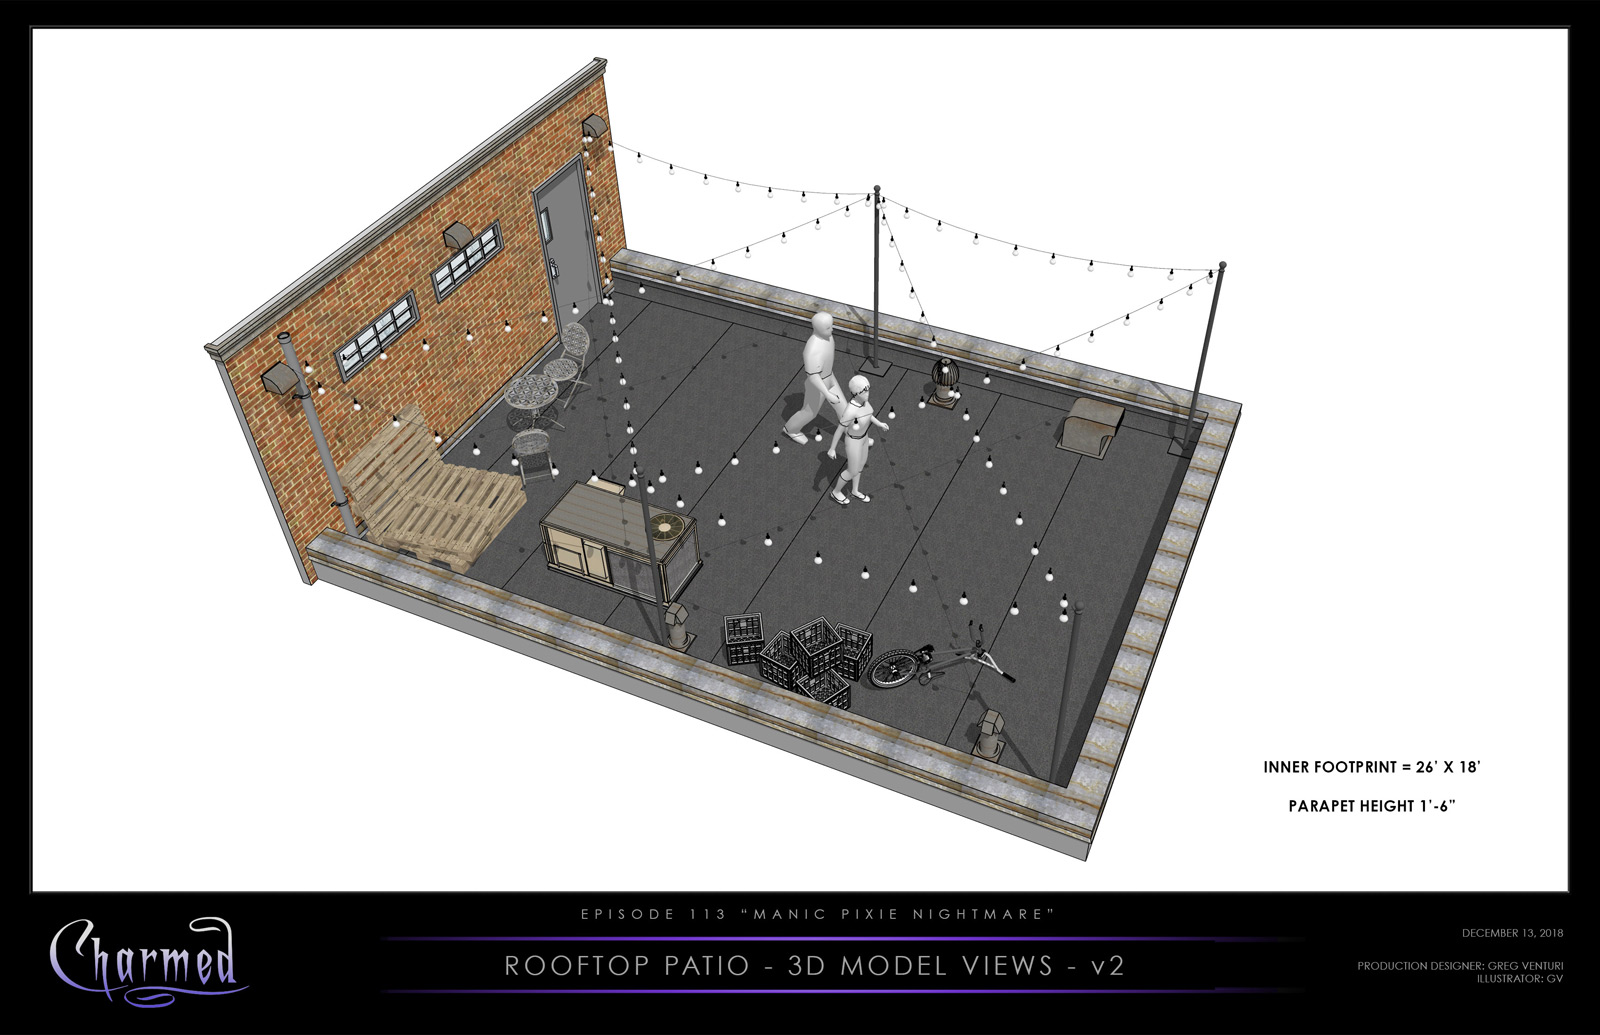 CHARMED: S1 - ROOFTOP - 3D MODEL VIEW